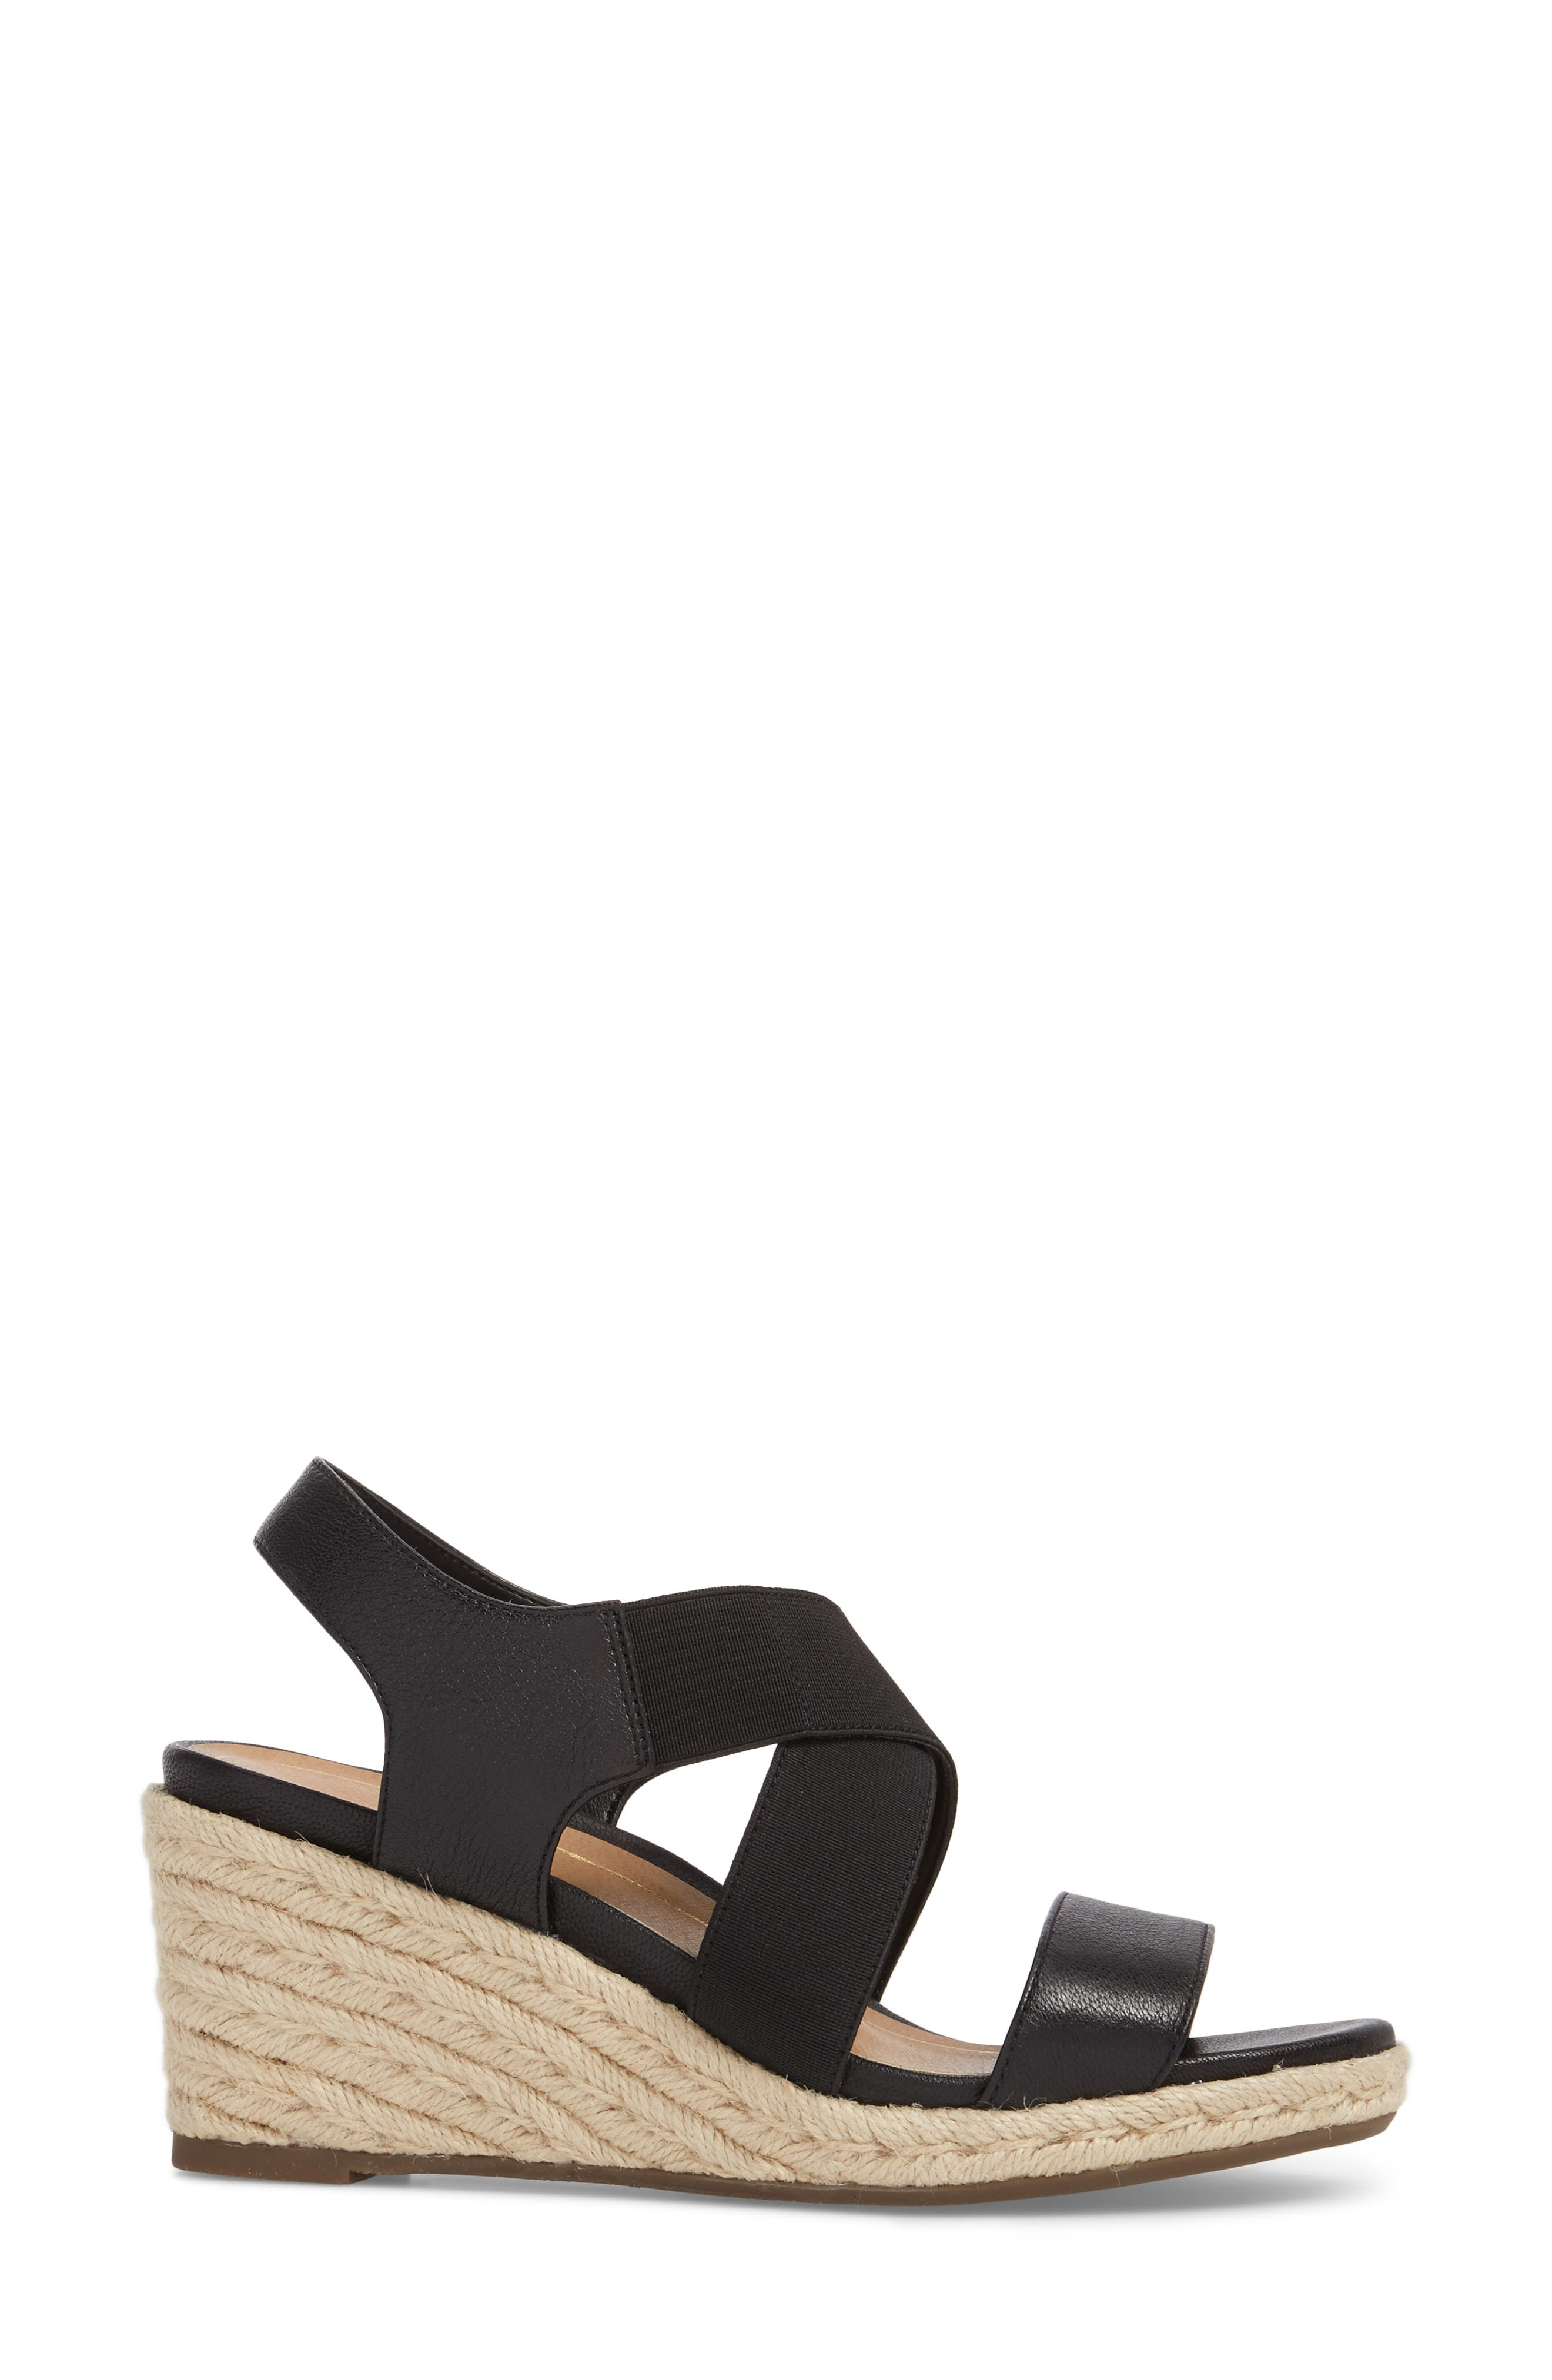 Ainsleigh Wedge Sandal,                             Alternate thumbnail 3, color,                             BLACK LEATHER